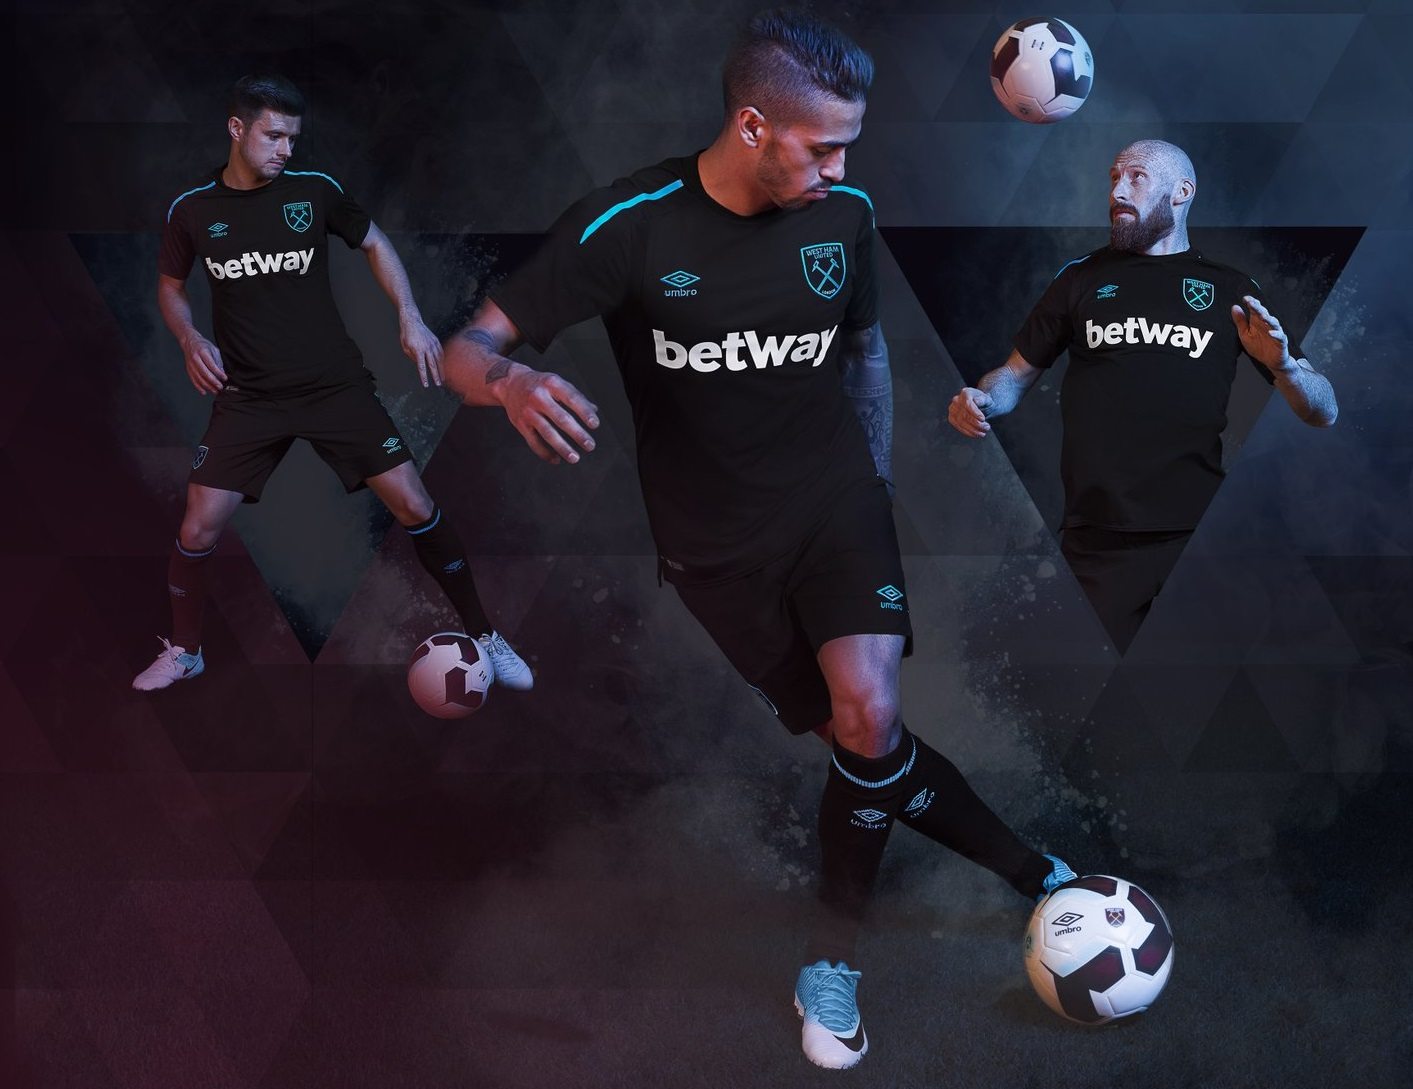 West Ham United 2017/18 Umbro Away Kit – FOOTBALL FASHION.ORG